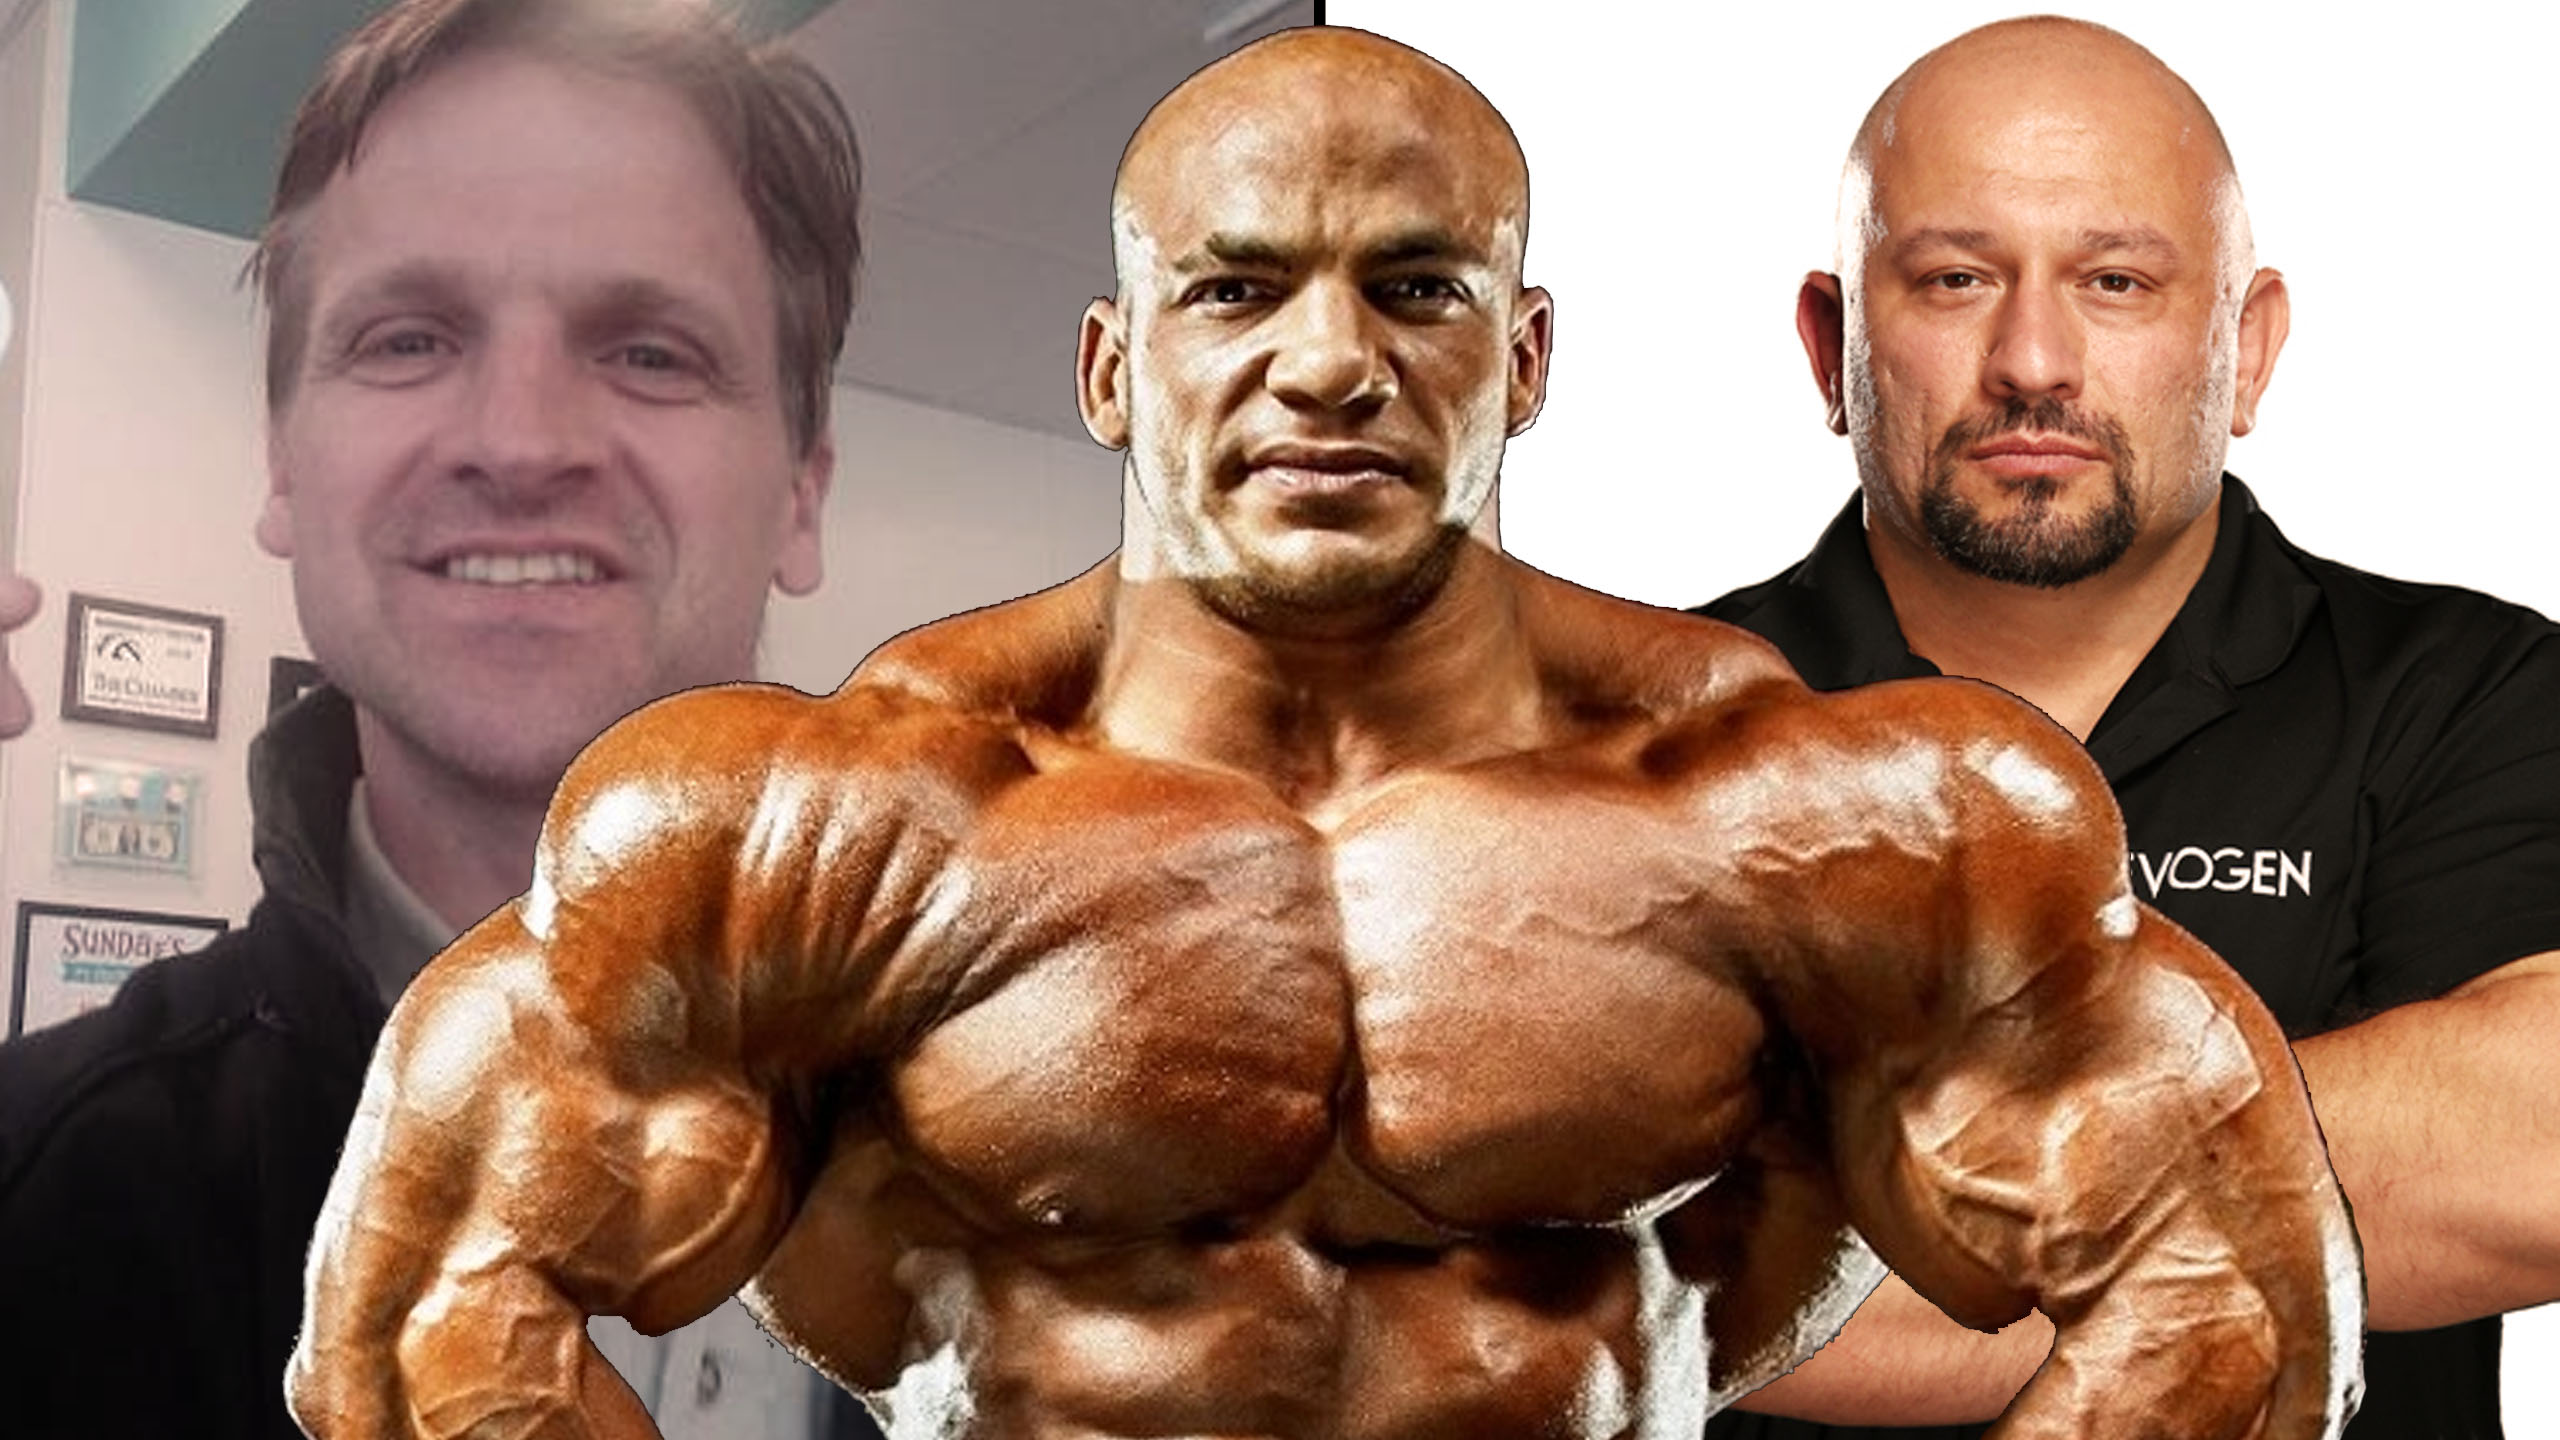 big ramy hany rambod chris aceto